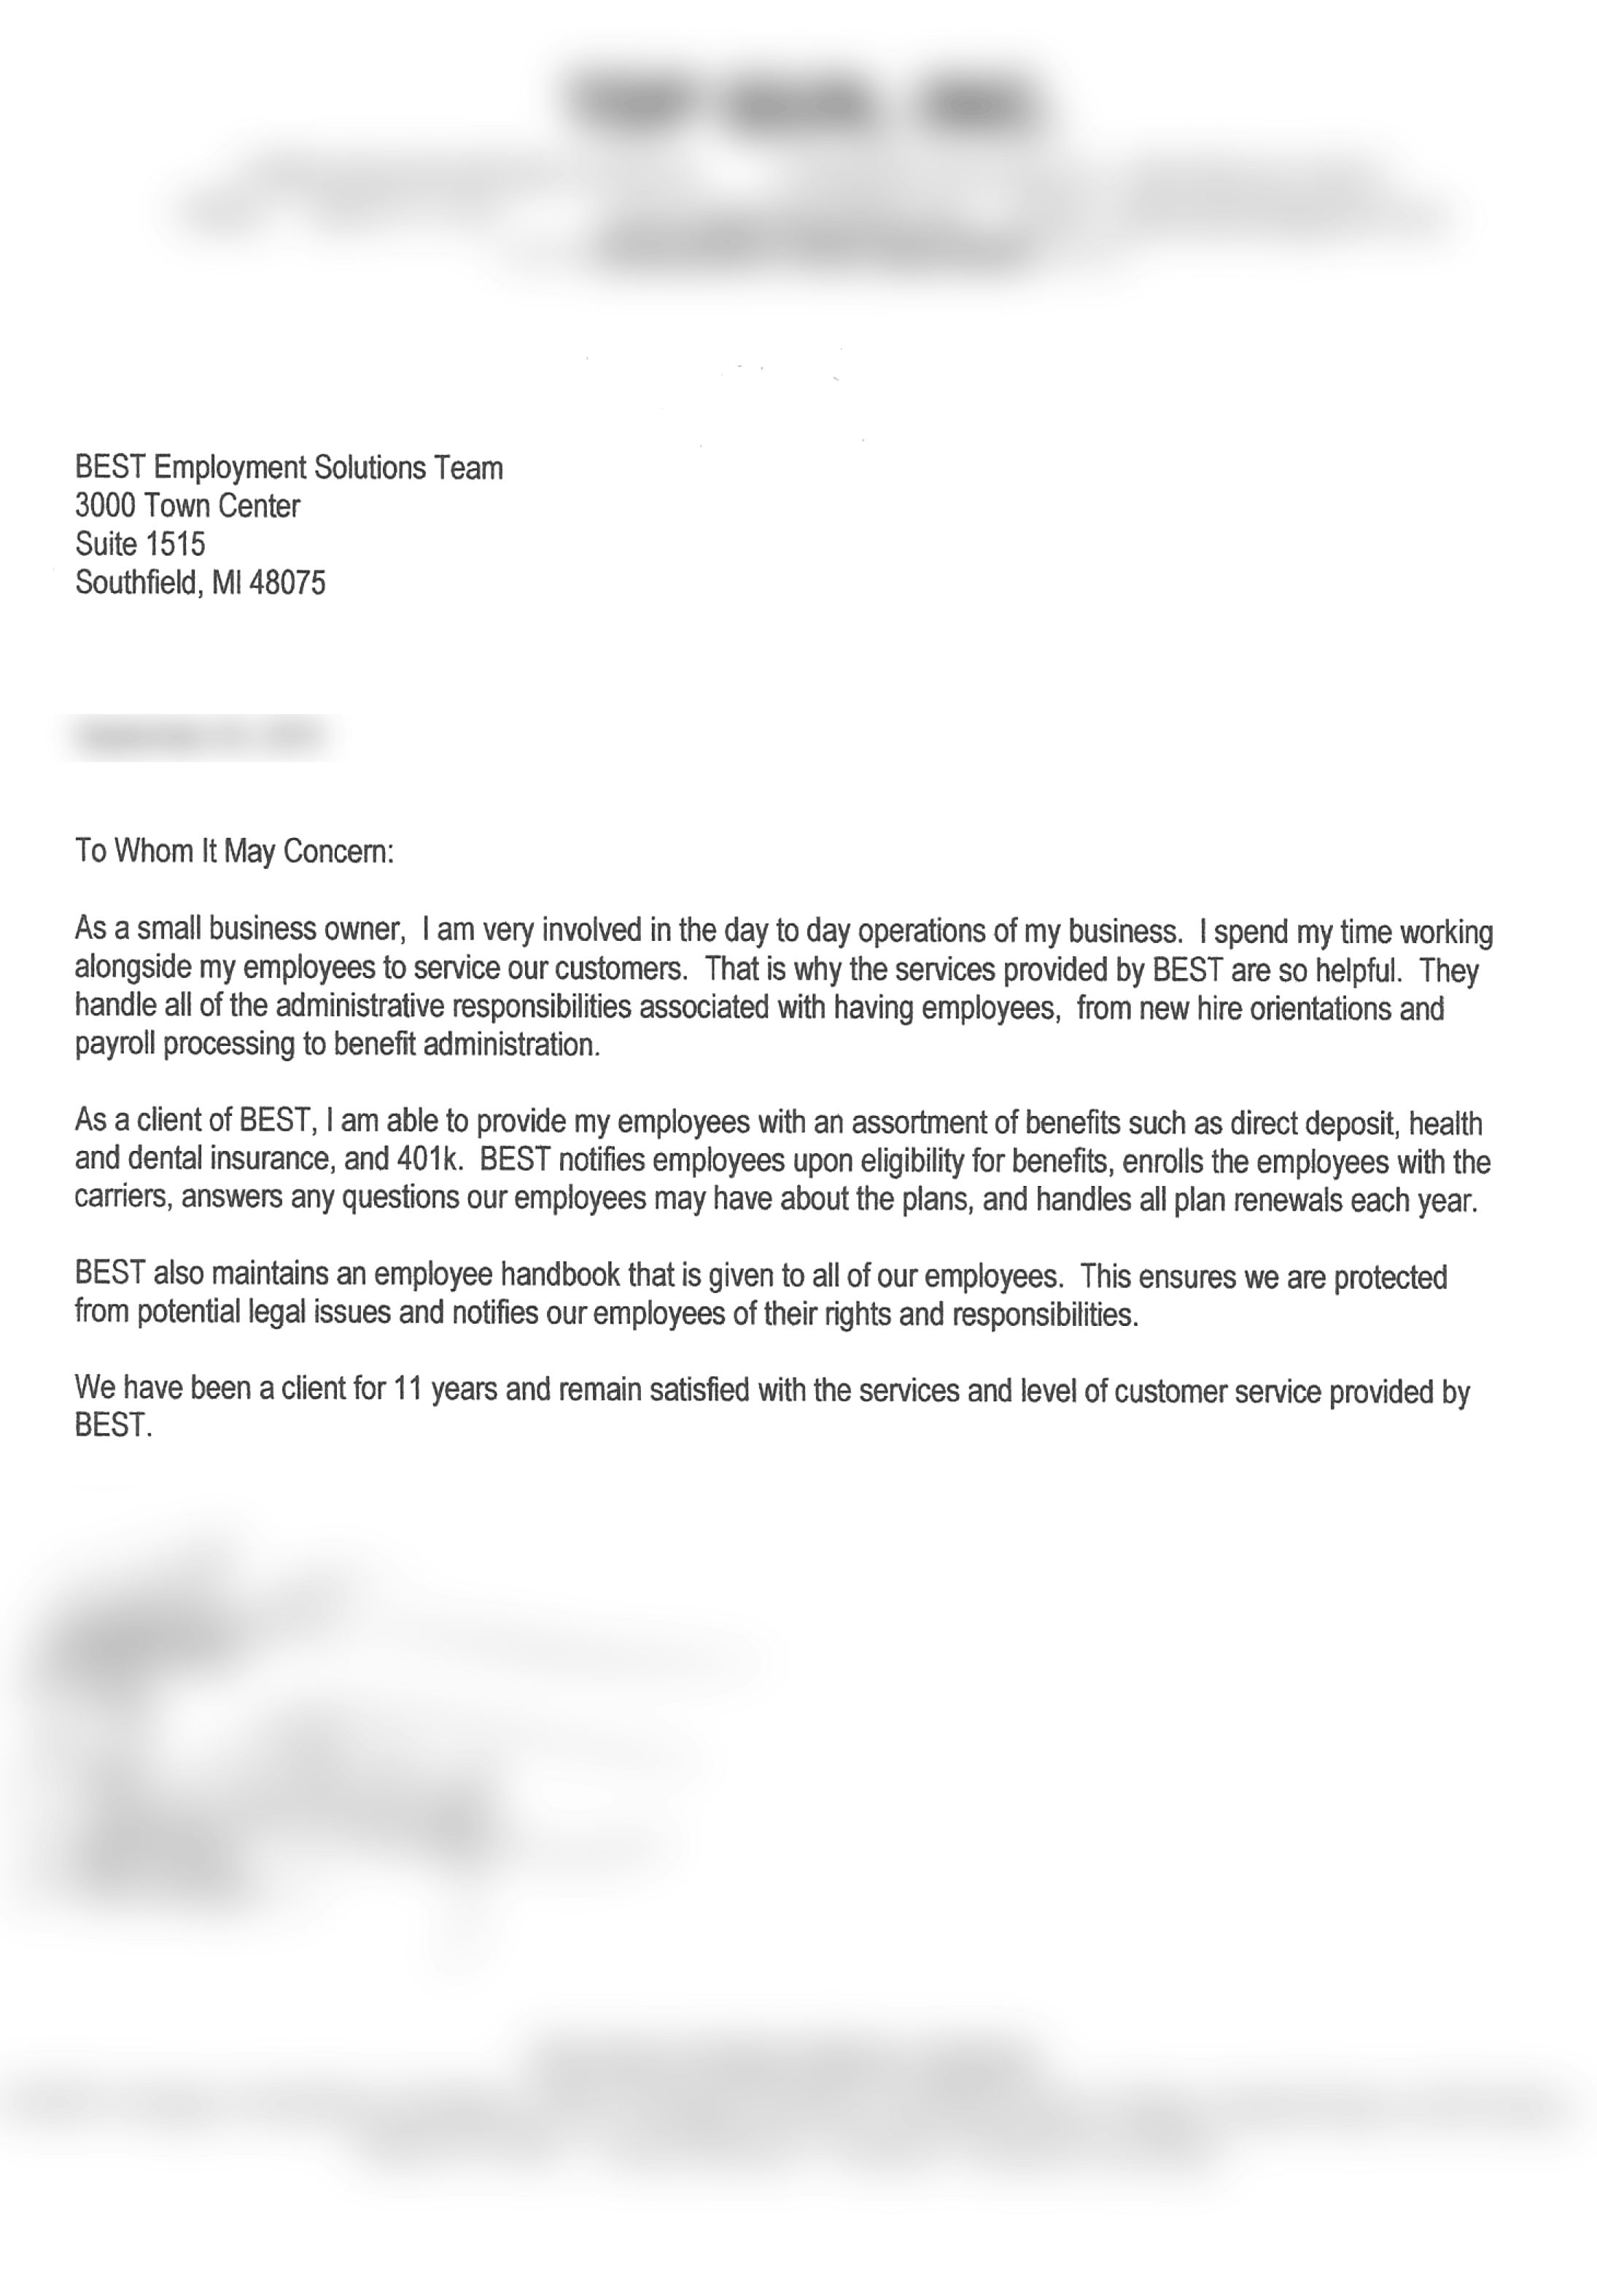 Top-Gun-Signed-Reference-Letter.png